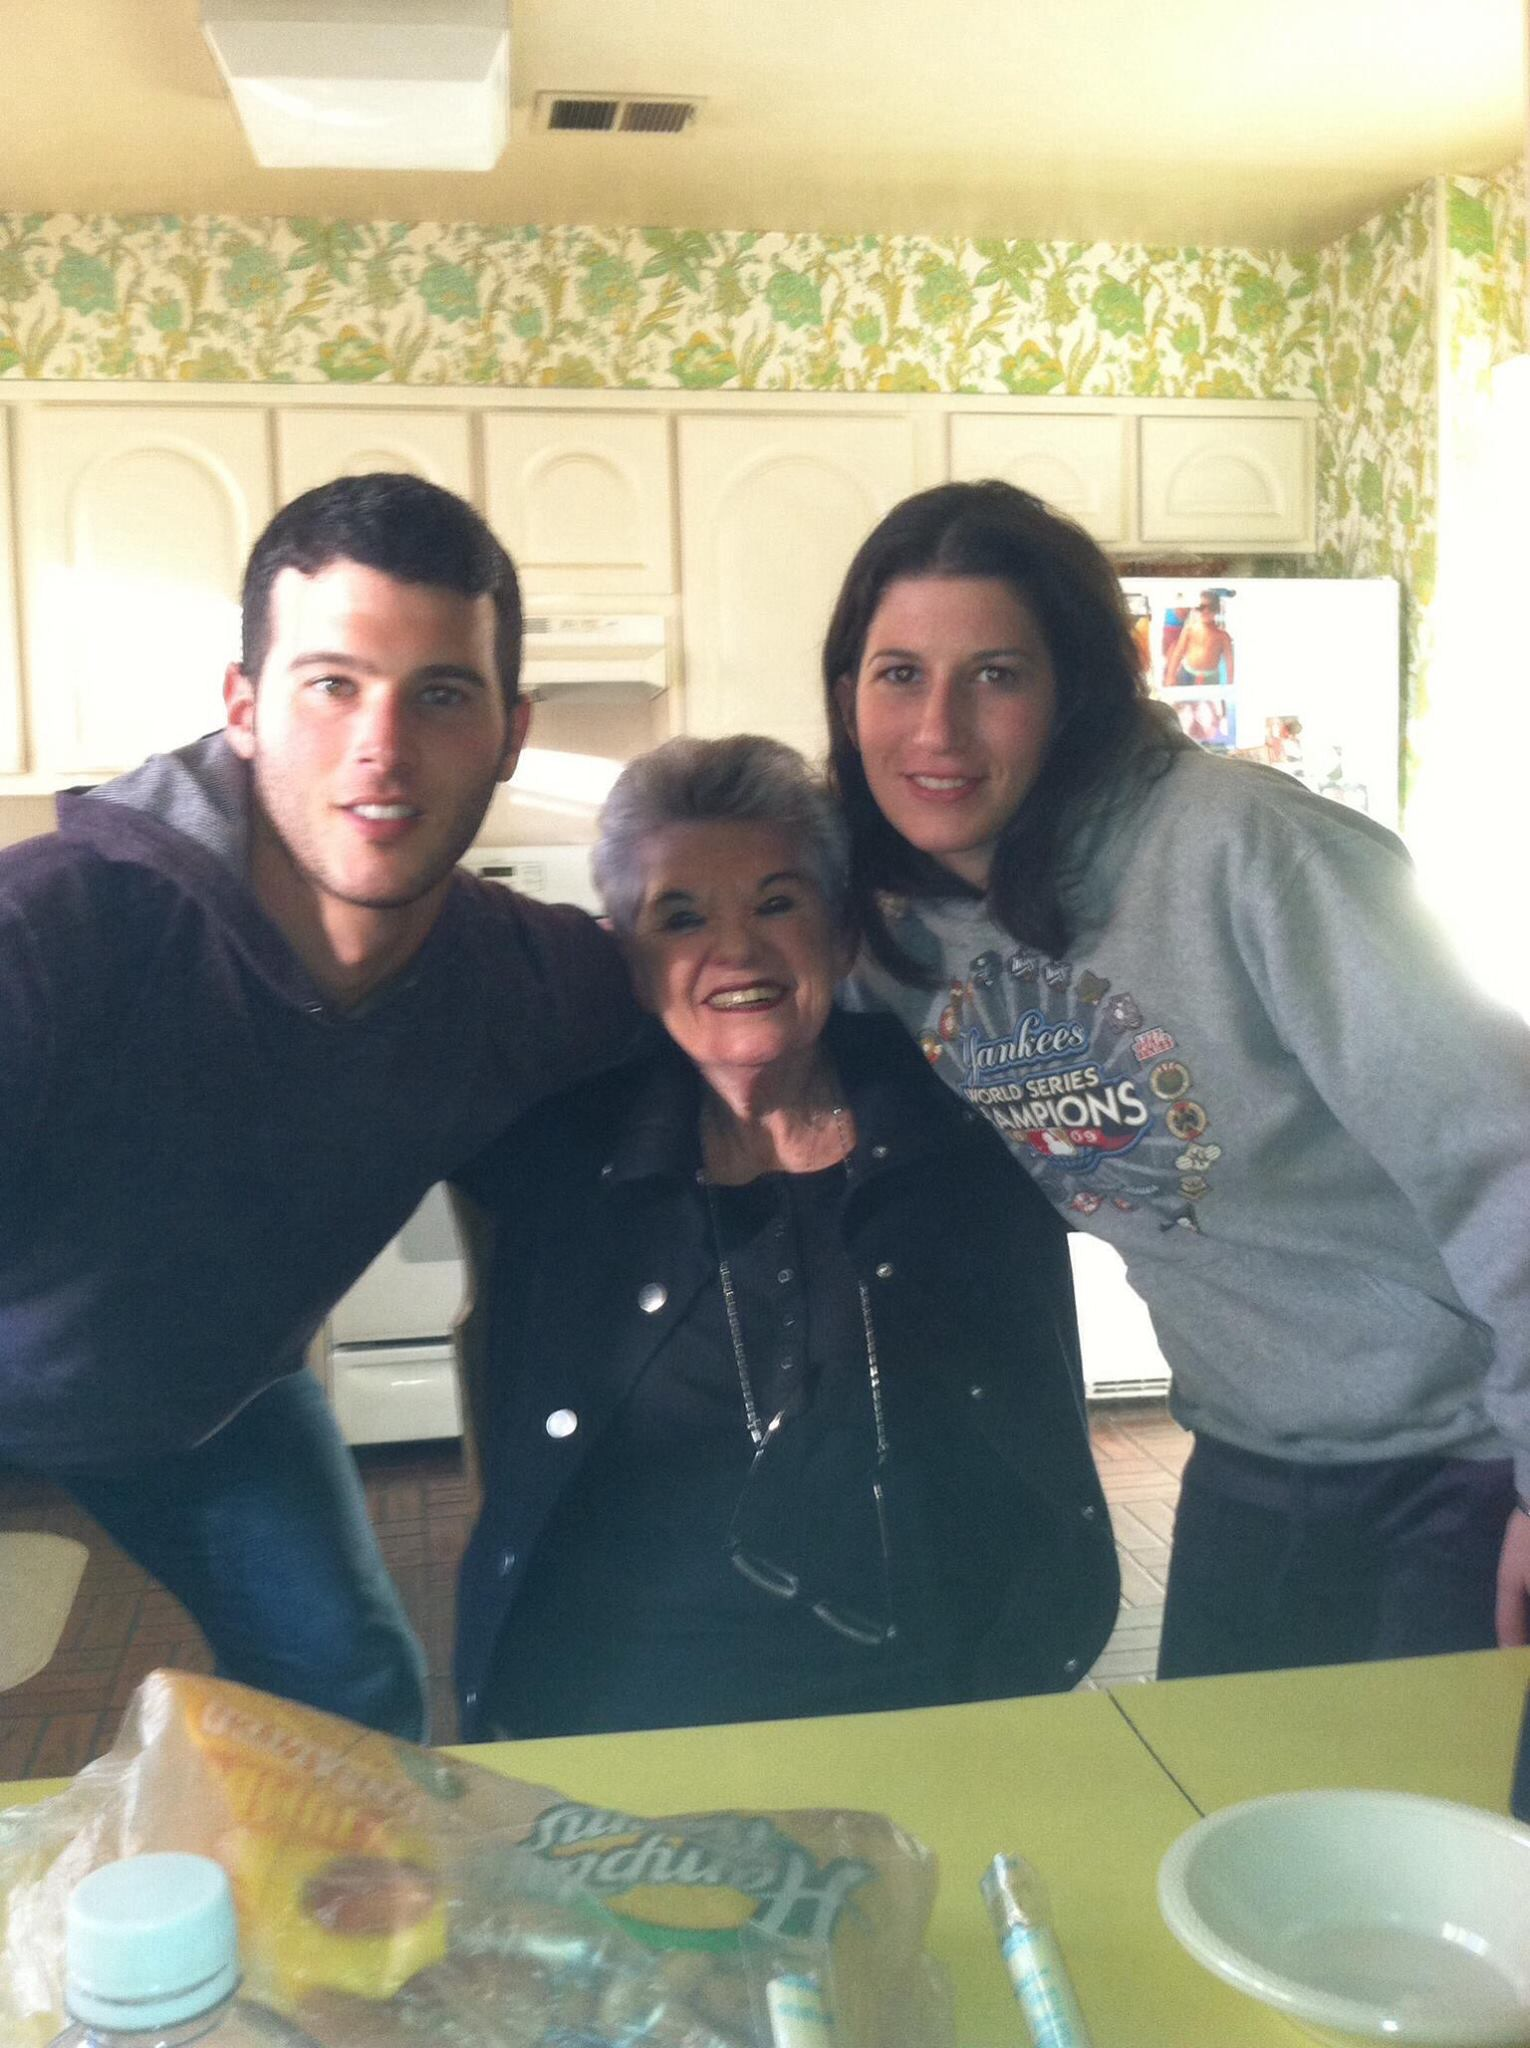 Jeremy (my brother), Gran, and I